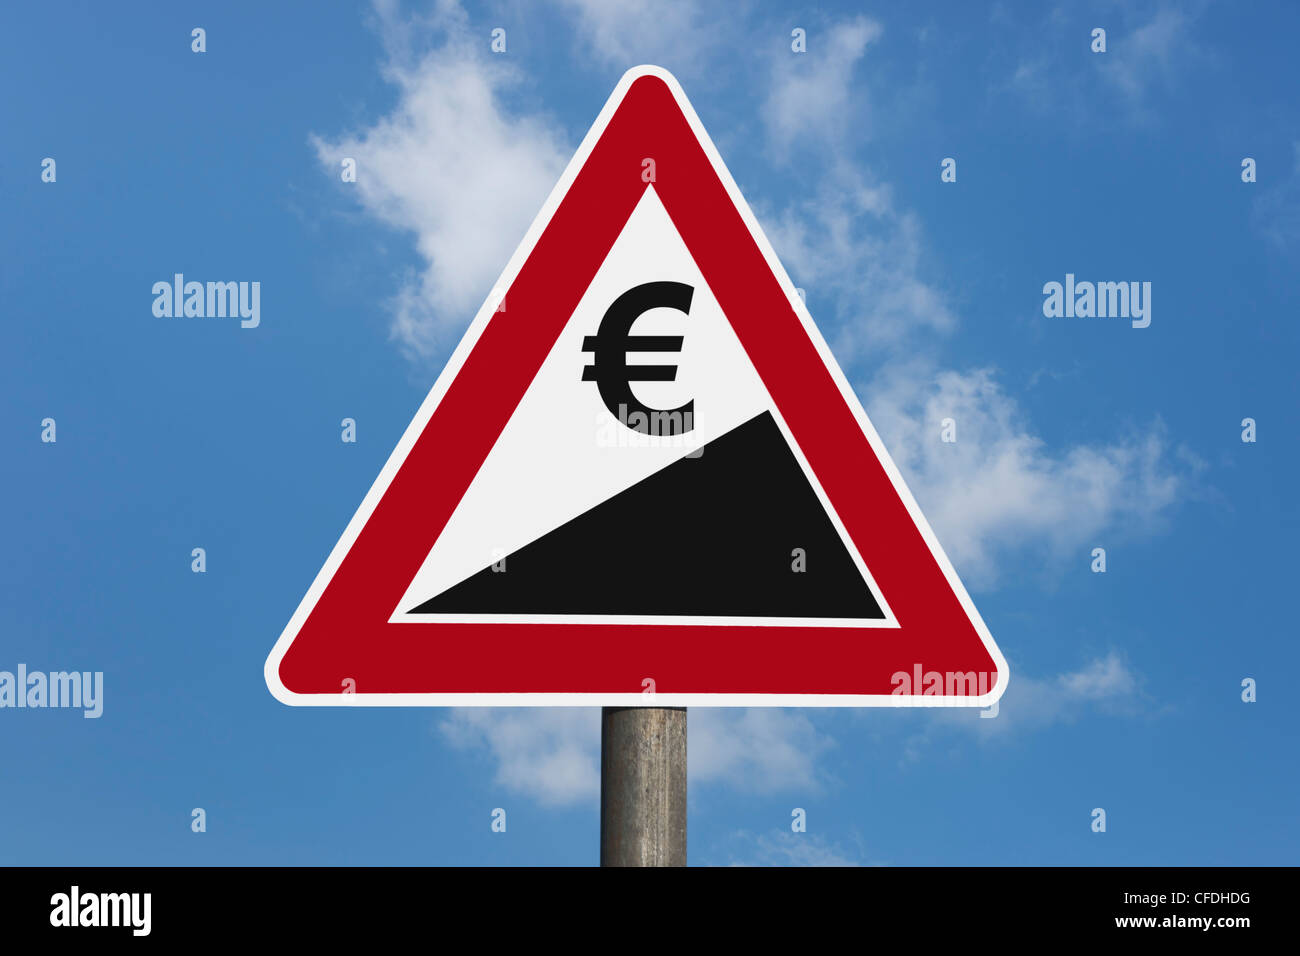 Detail photo of a danger sign 'Upward gradient' with a Euro currency sign, background sky. - Stock Image